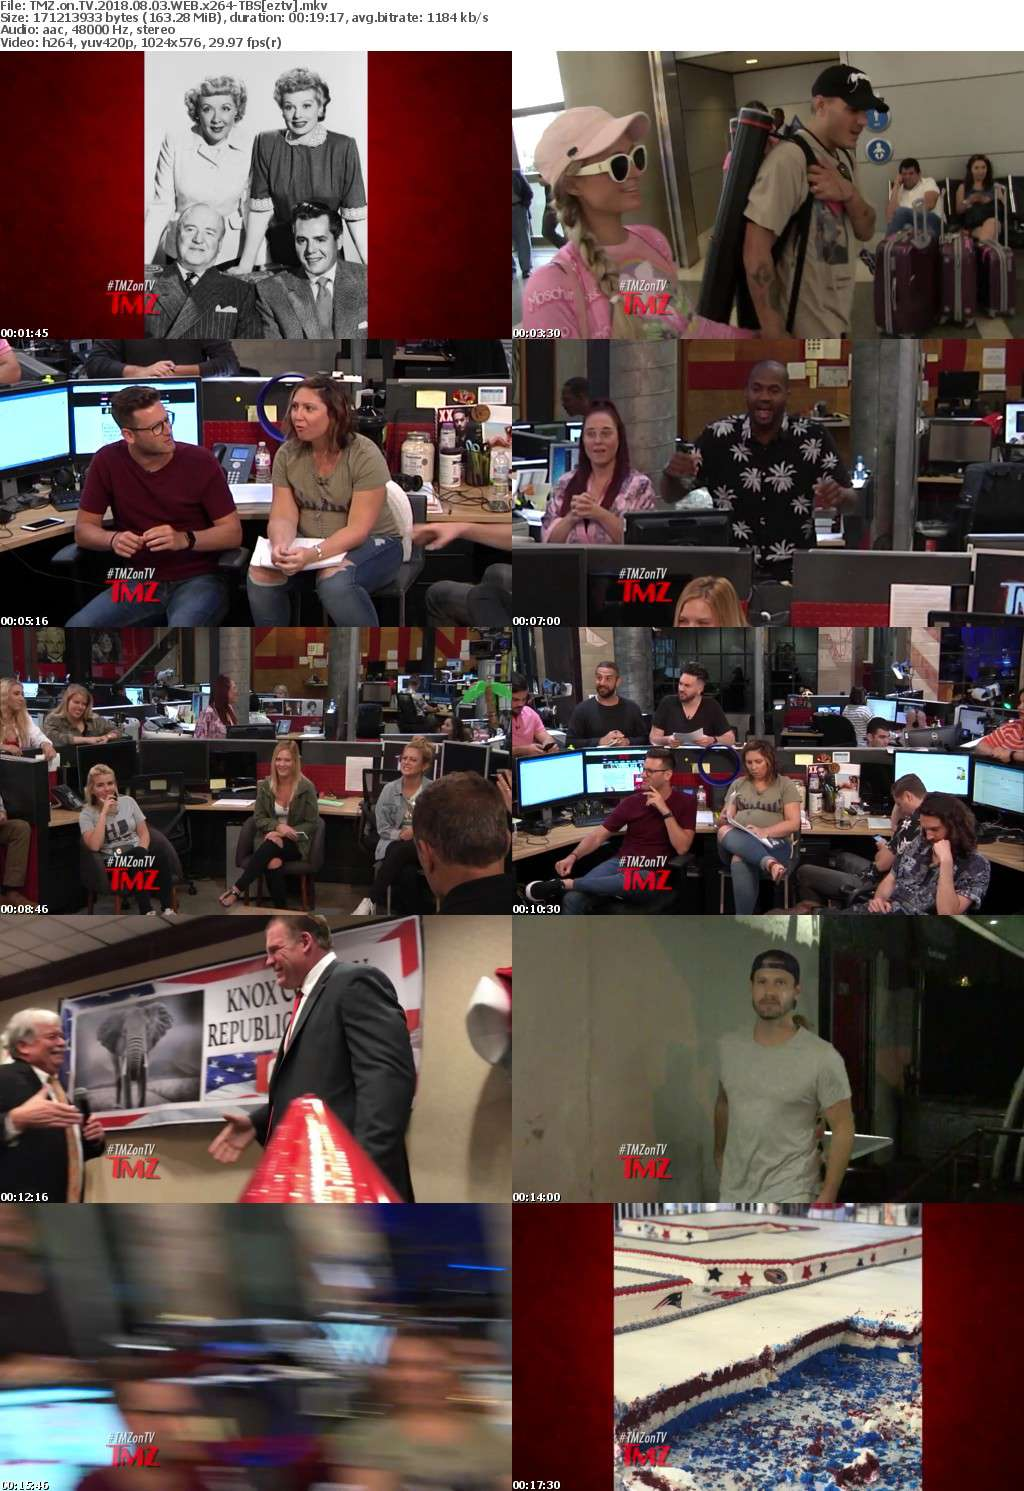 TMZ on TV (2018) 08 03 WEB x264-TBS